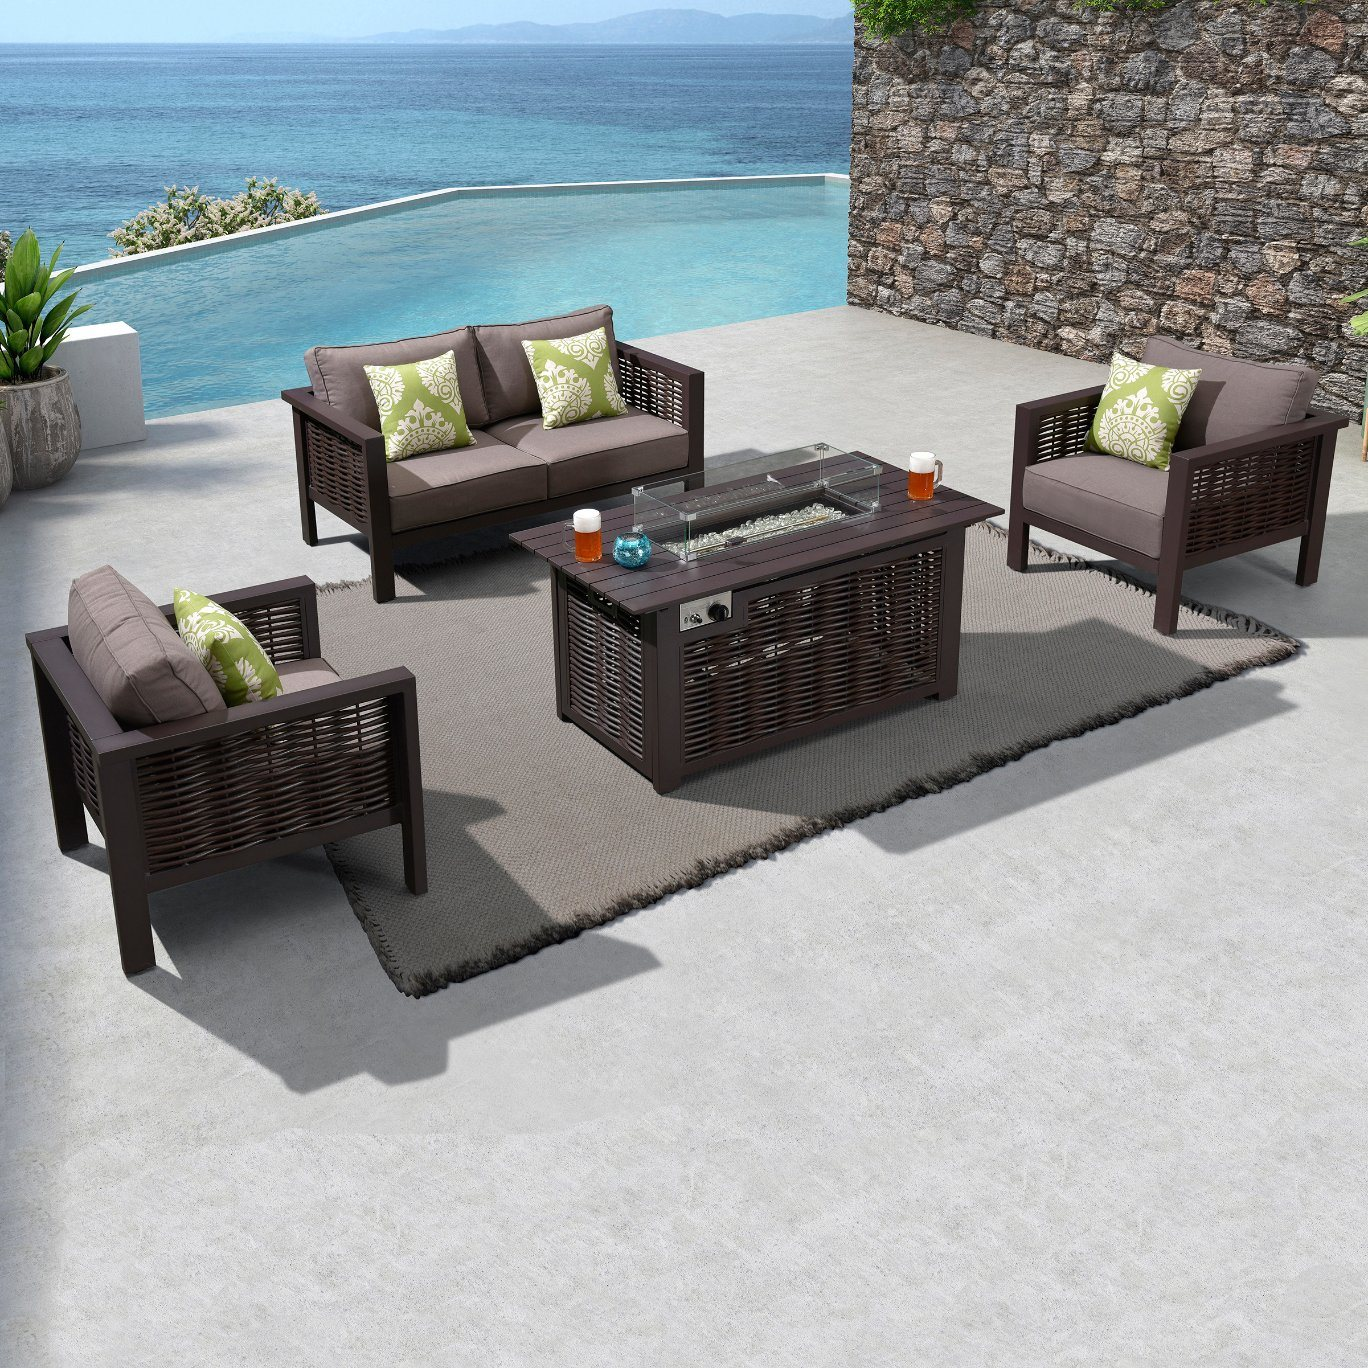 china outdoor sectional couch brown